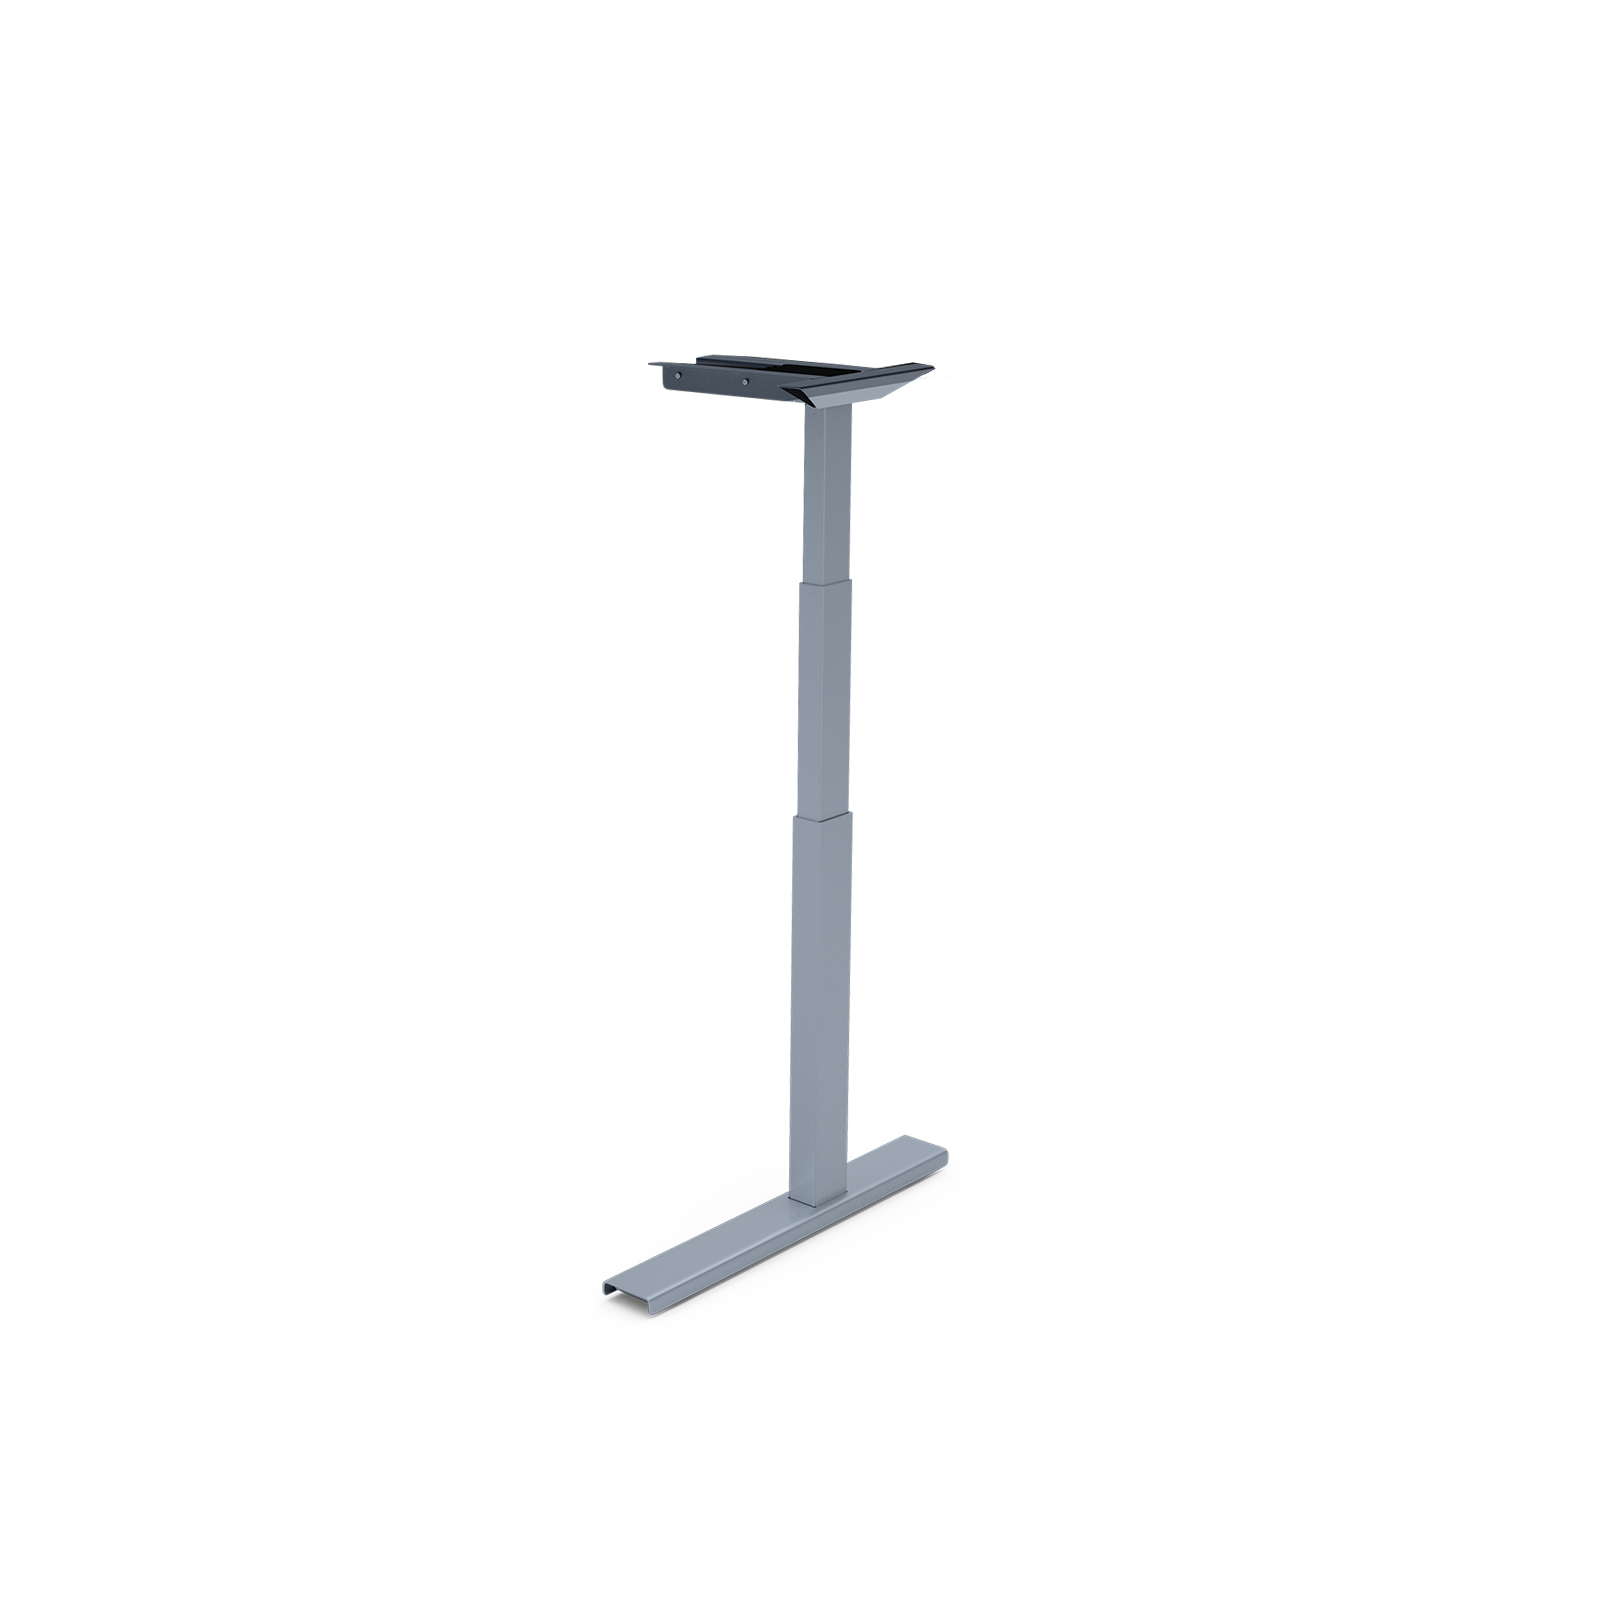 UPDESK Replacement Pro (3-Stage) Leg Only